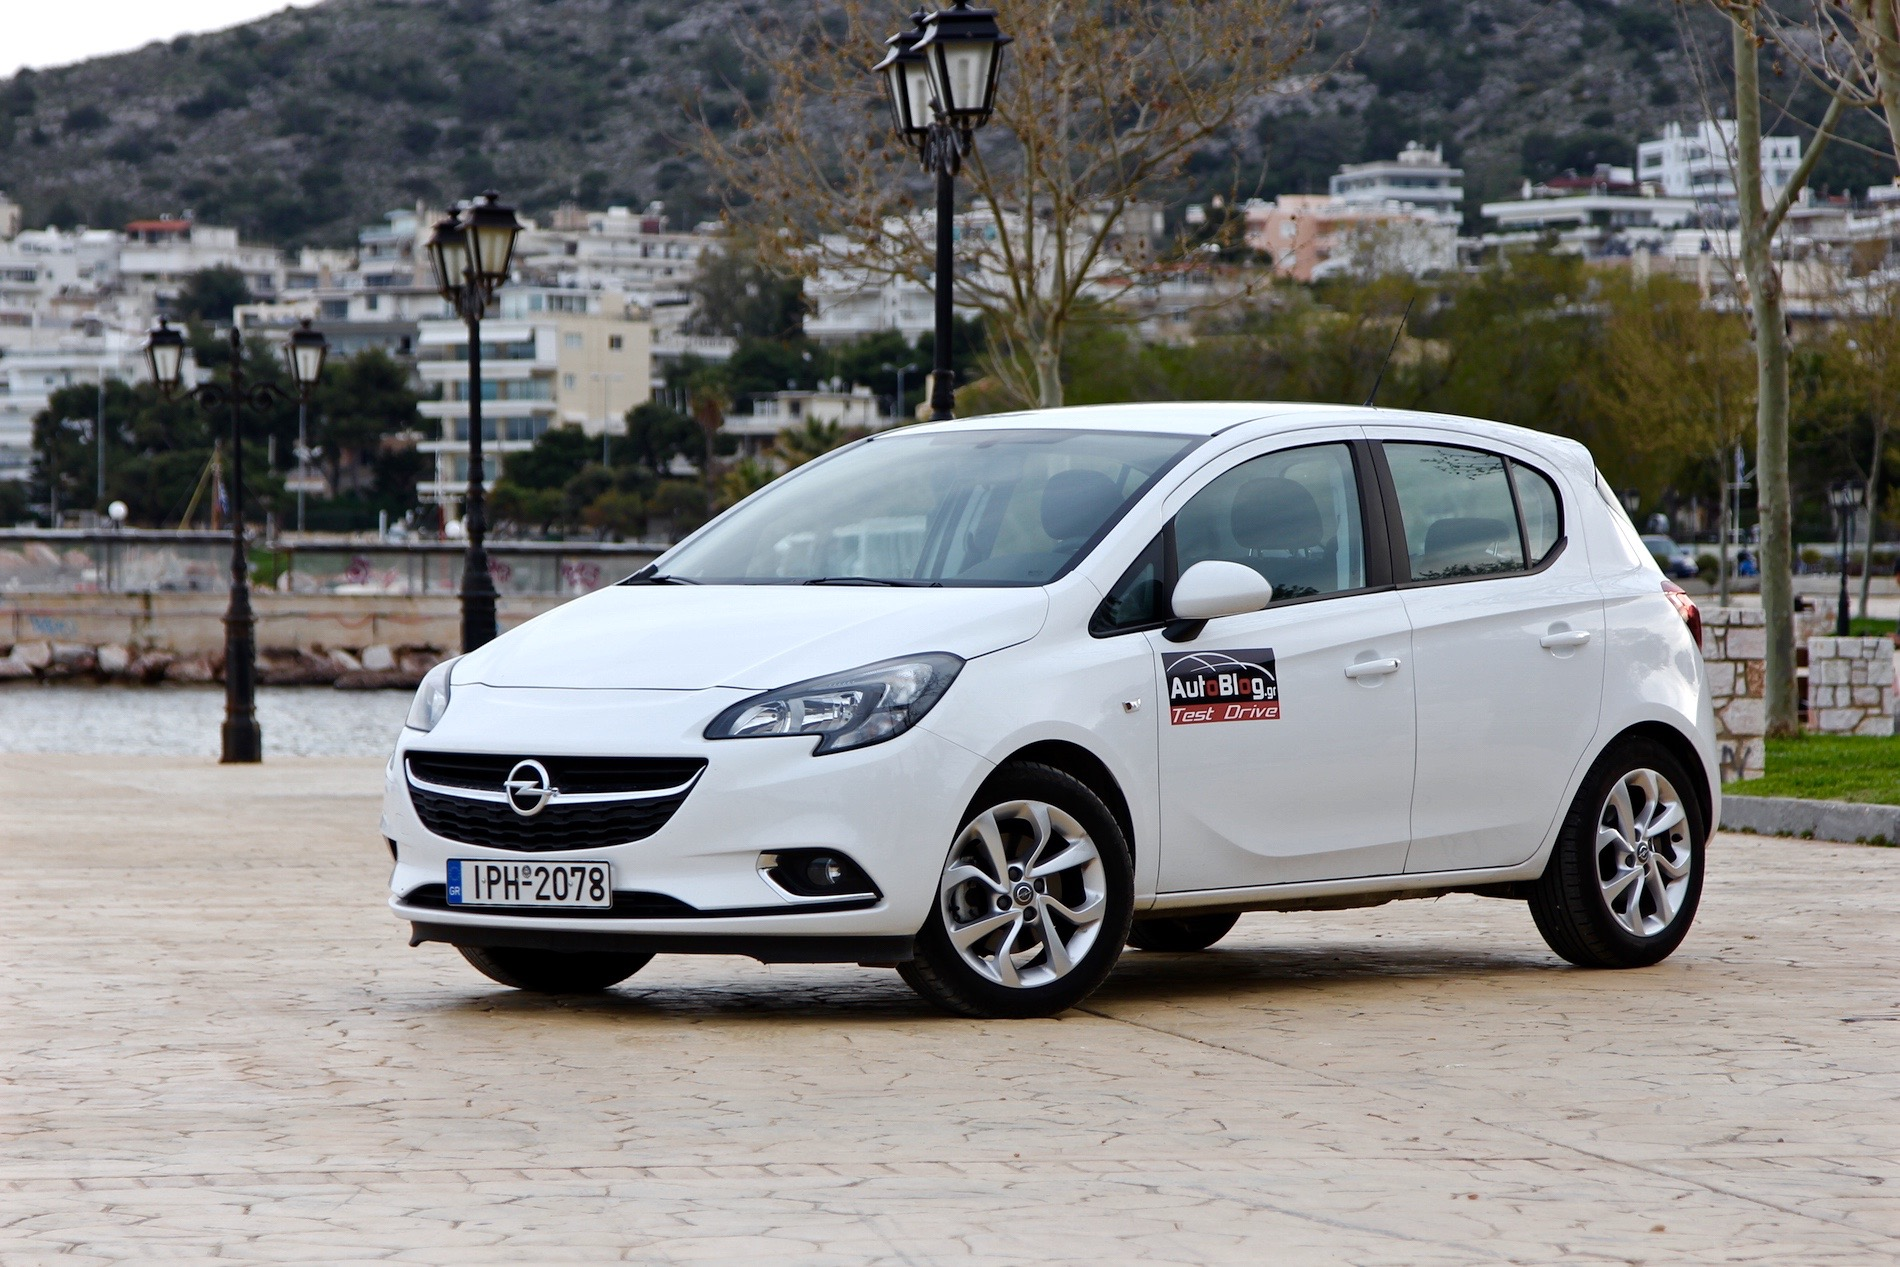 test_drive_opel_corsa_color_edition11jpg 08 may 2015 0054 628k - Opel Corsa Color Edition 2015